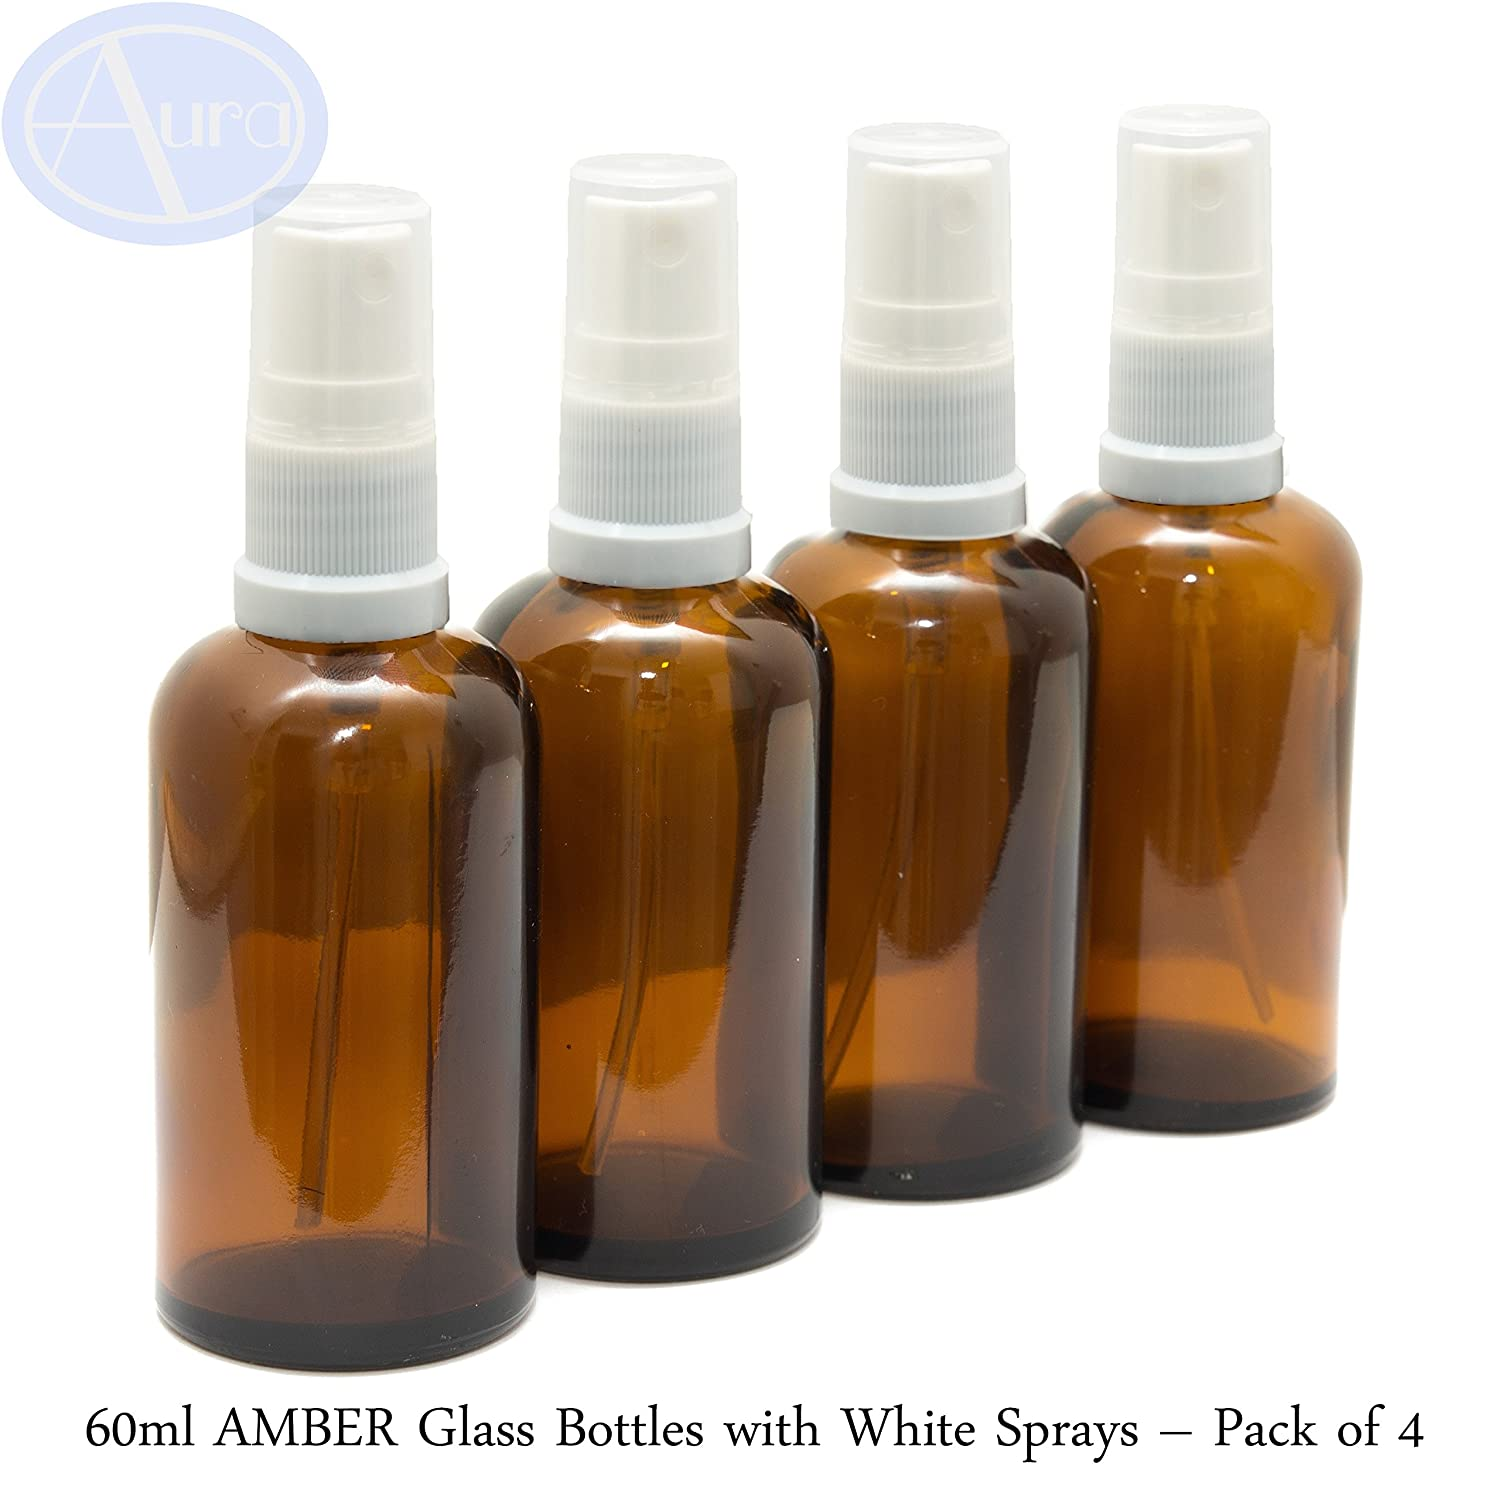 60ml AMBER Glass Bottles with White ATOMISER Sprays - PACK of 4 Aura Essential Oils